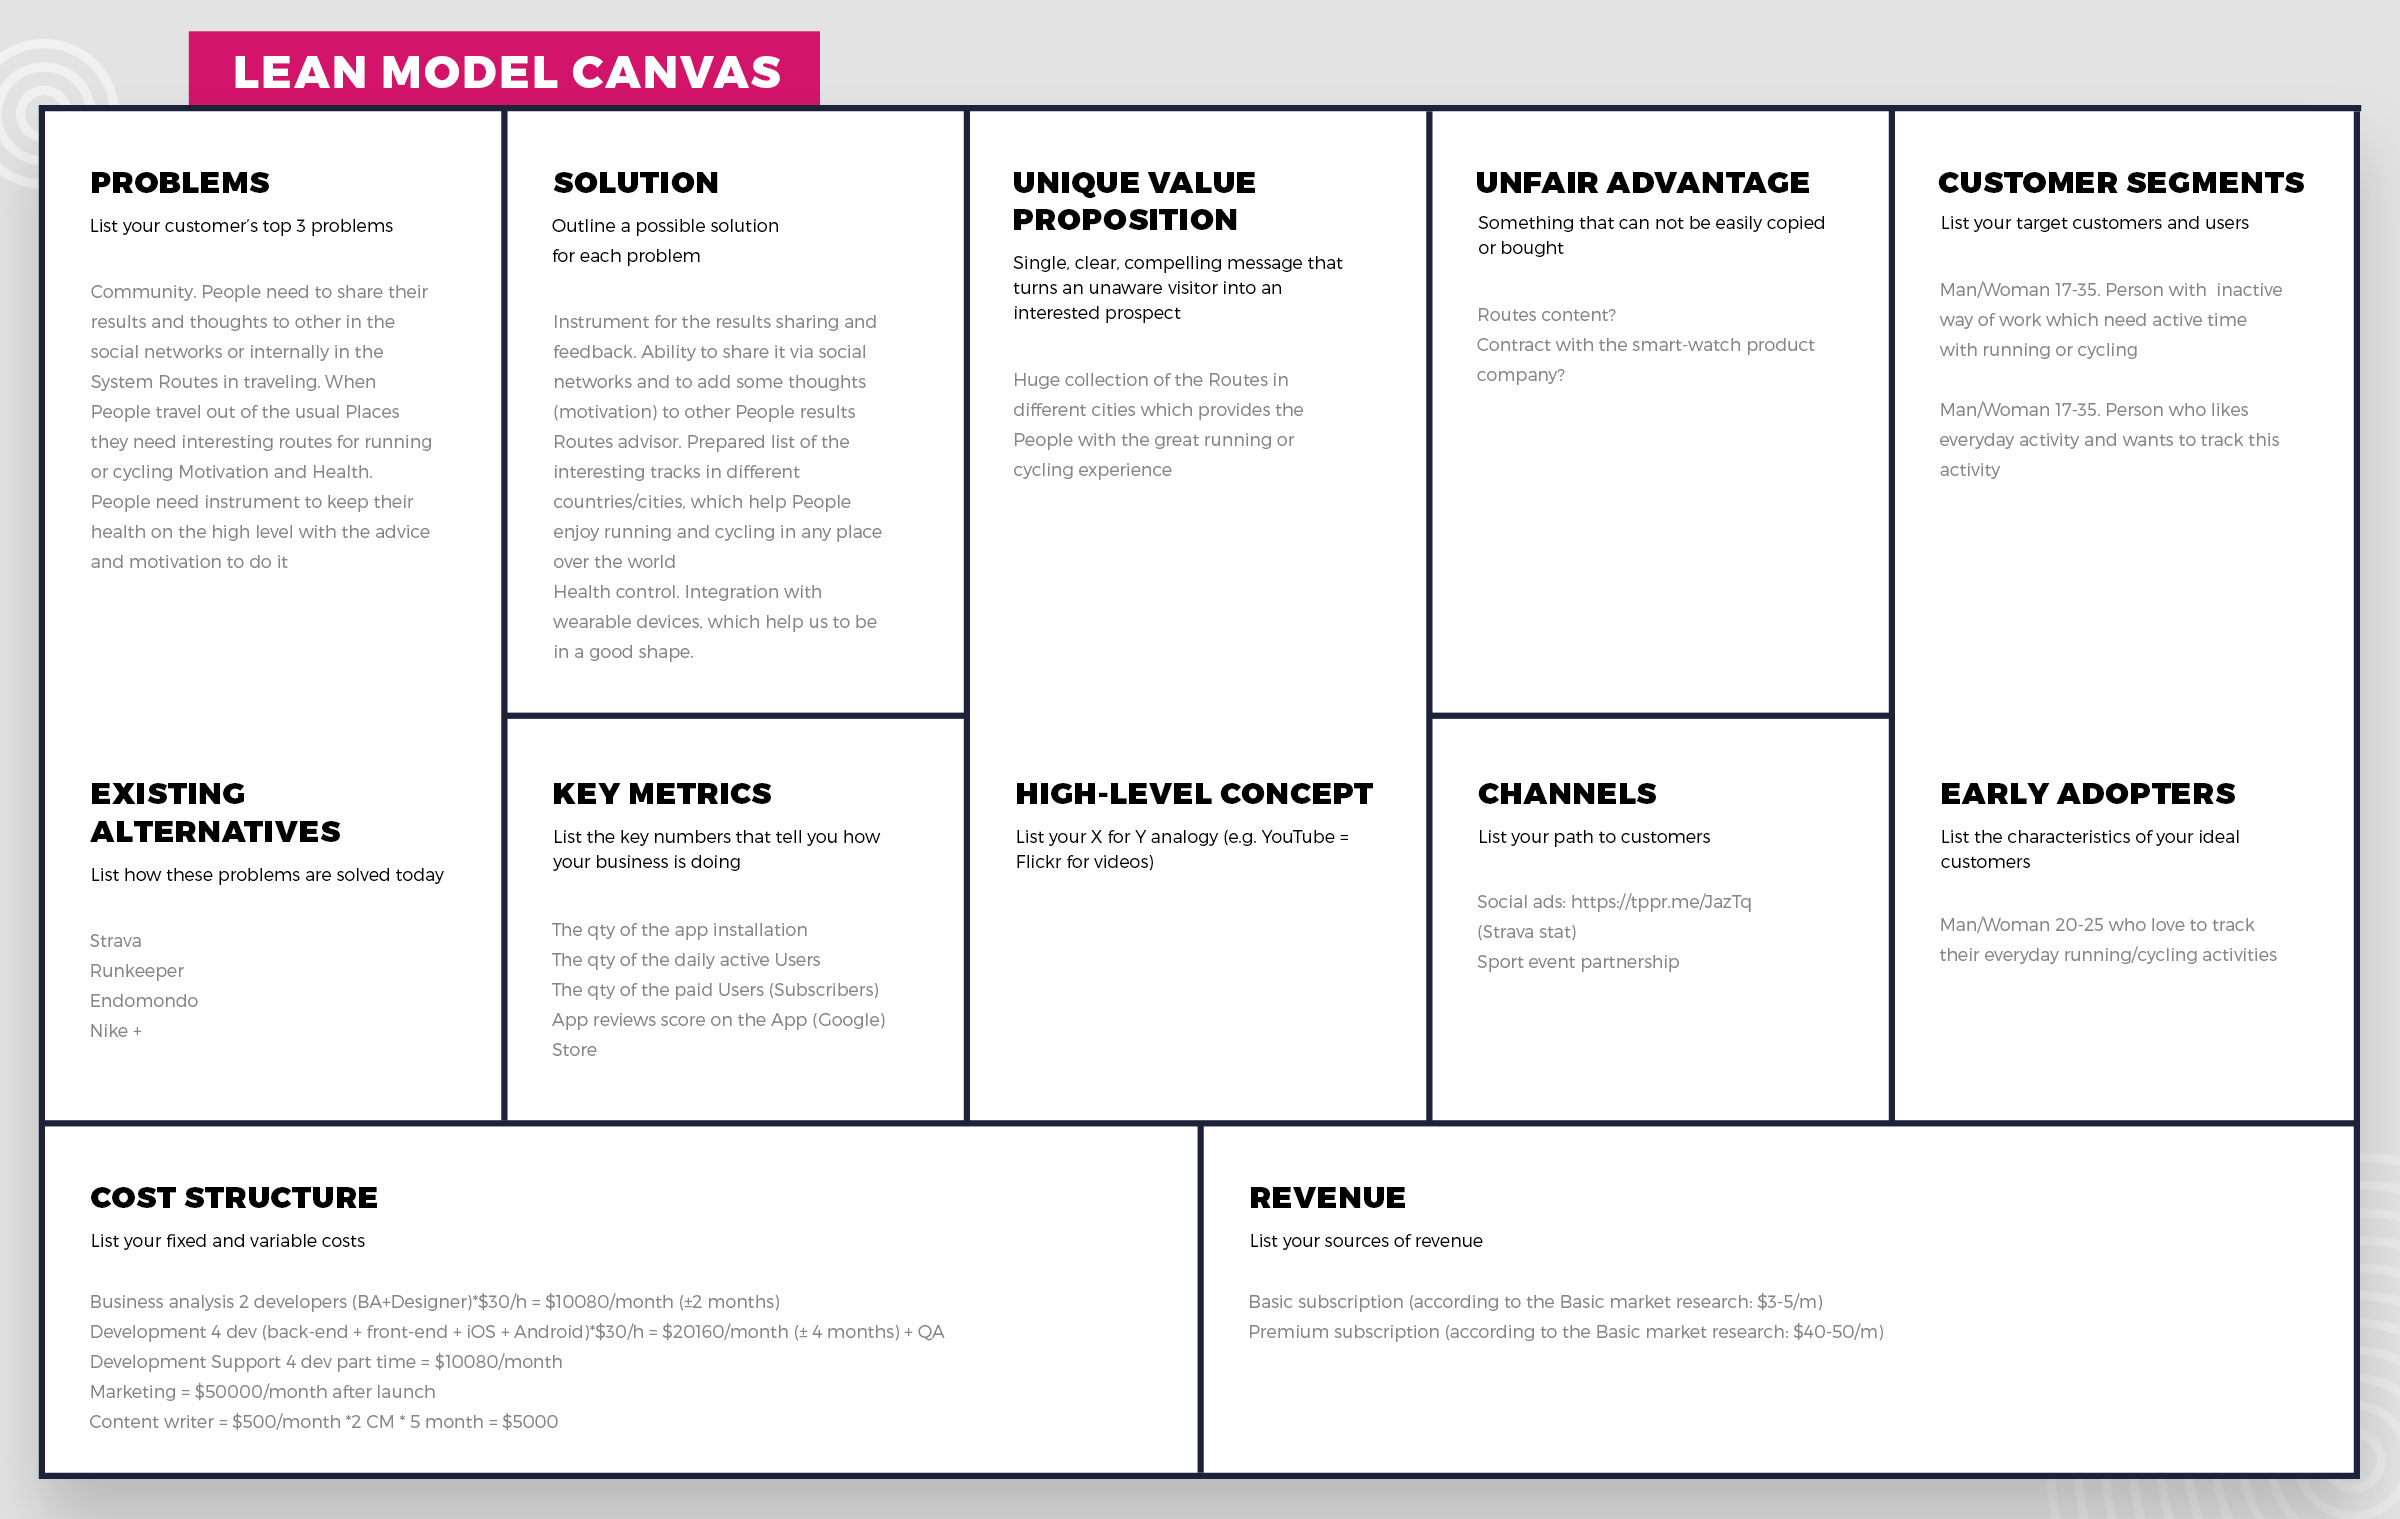 Lean Model Canvas for mobile app